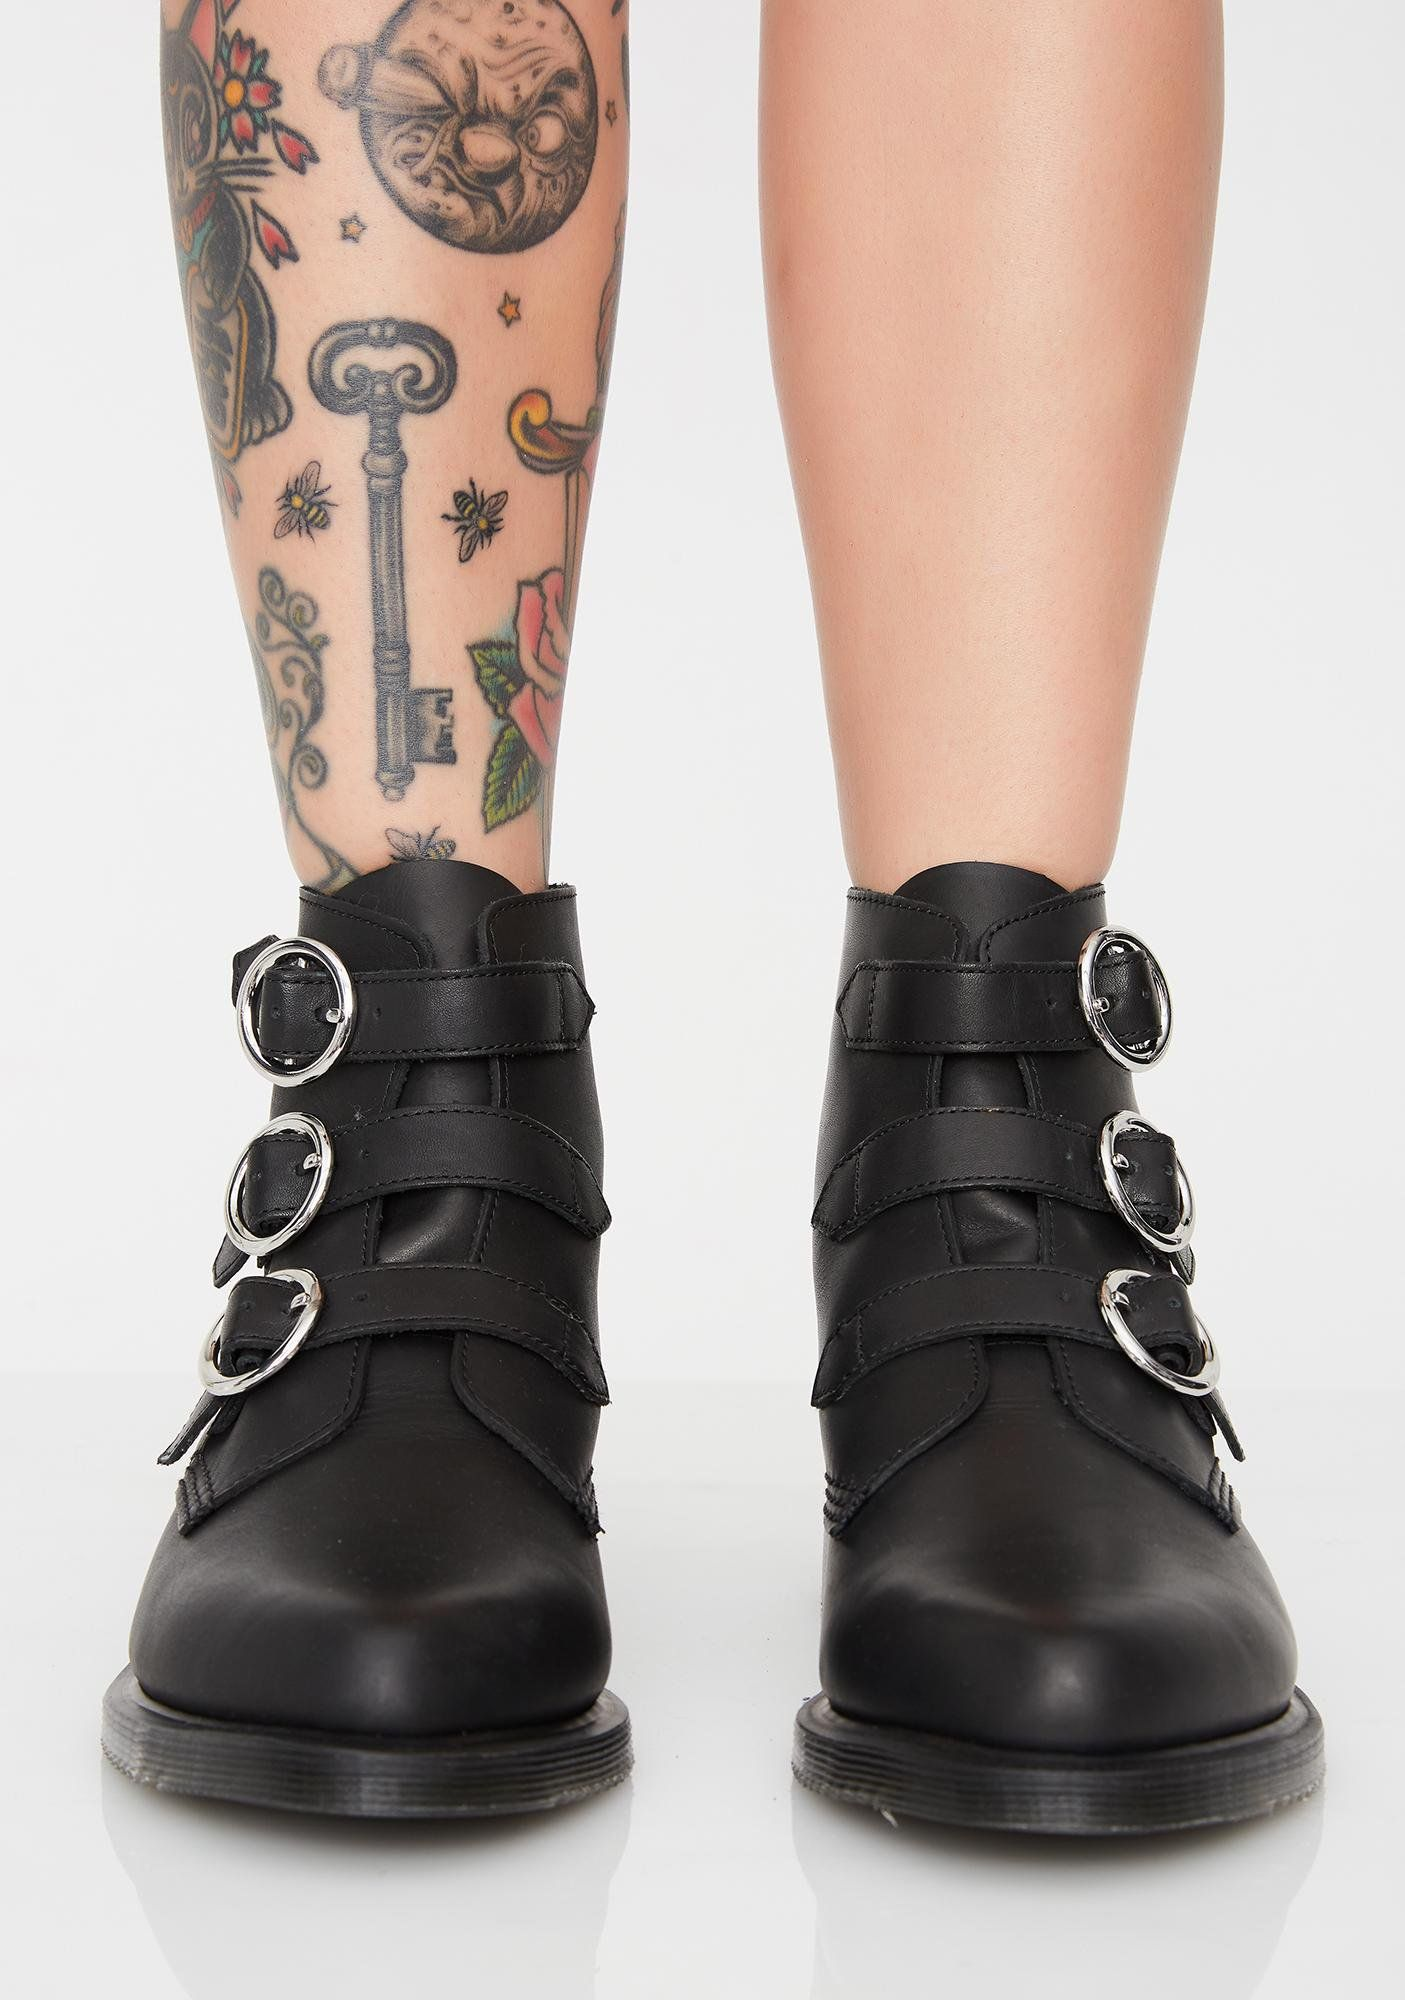 Maudie Ankle Boots | Boots, Ankle boots